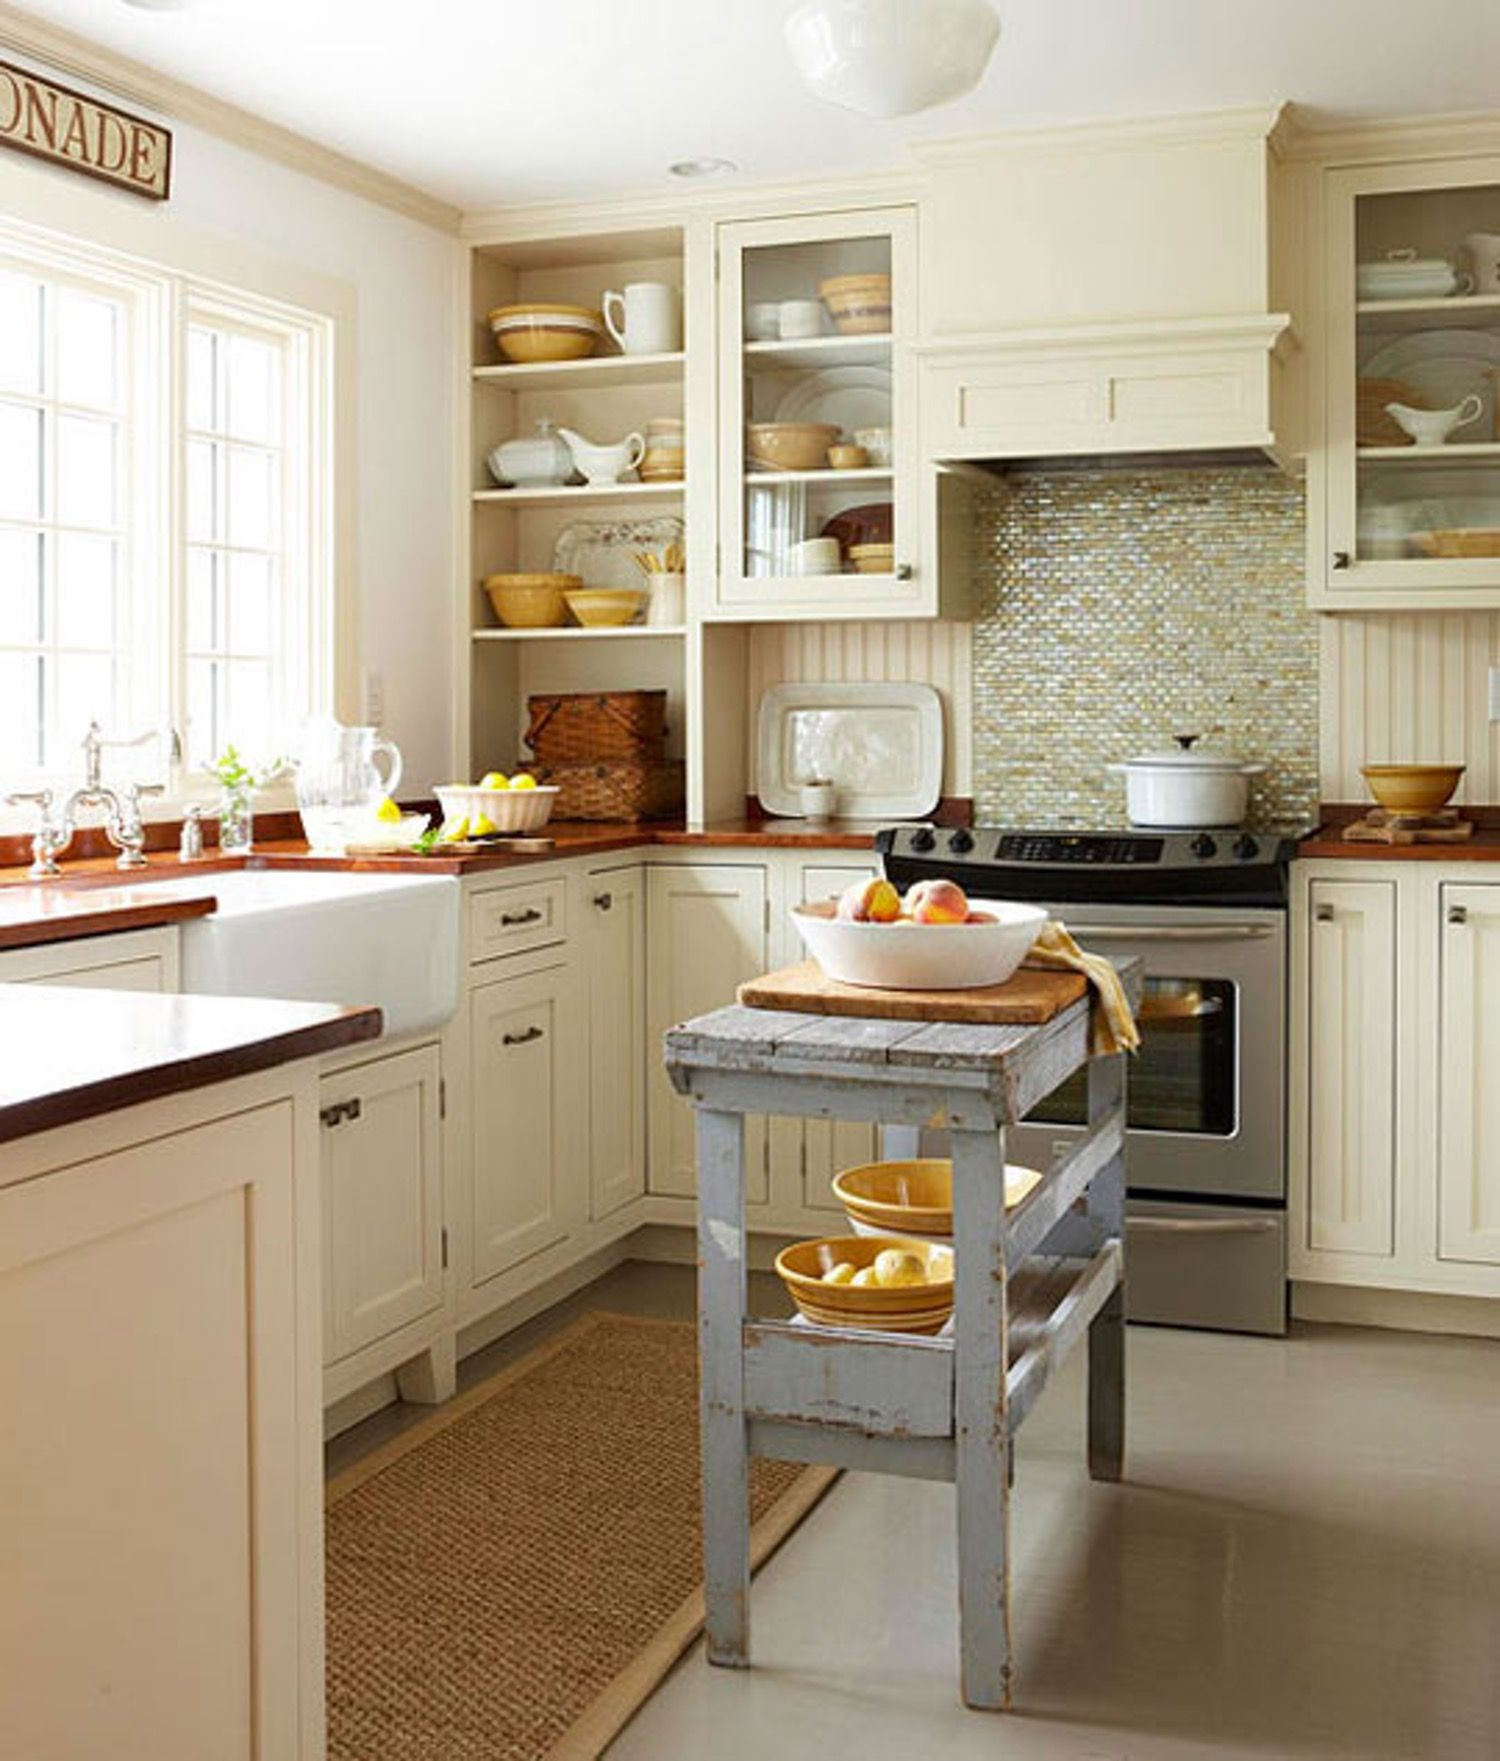 How Much Walking Space Is Required Around a Kitchen Island? | Cocinas